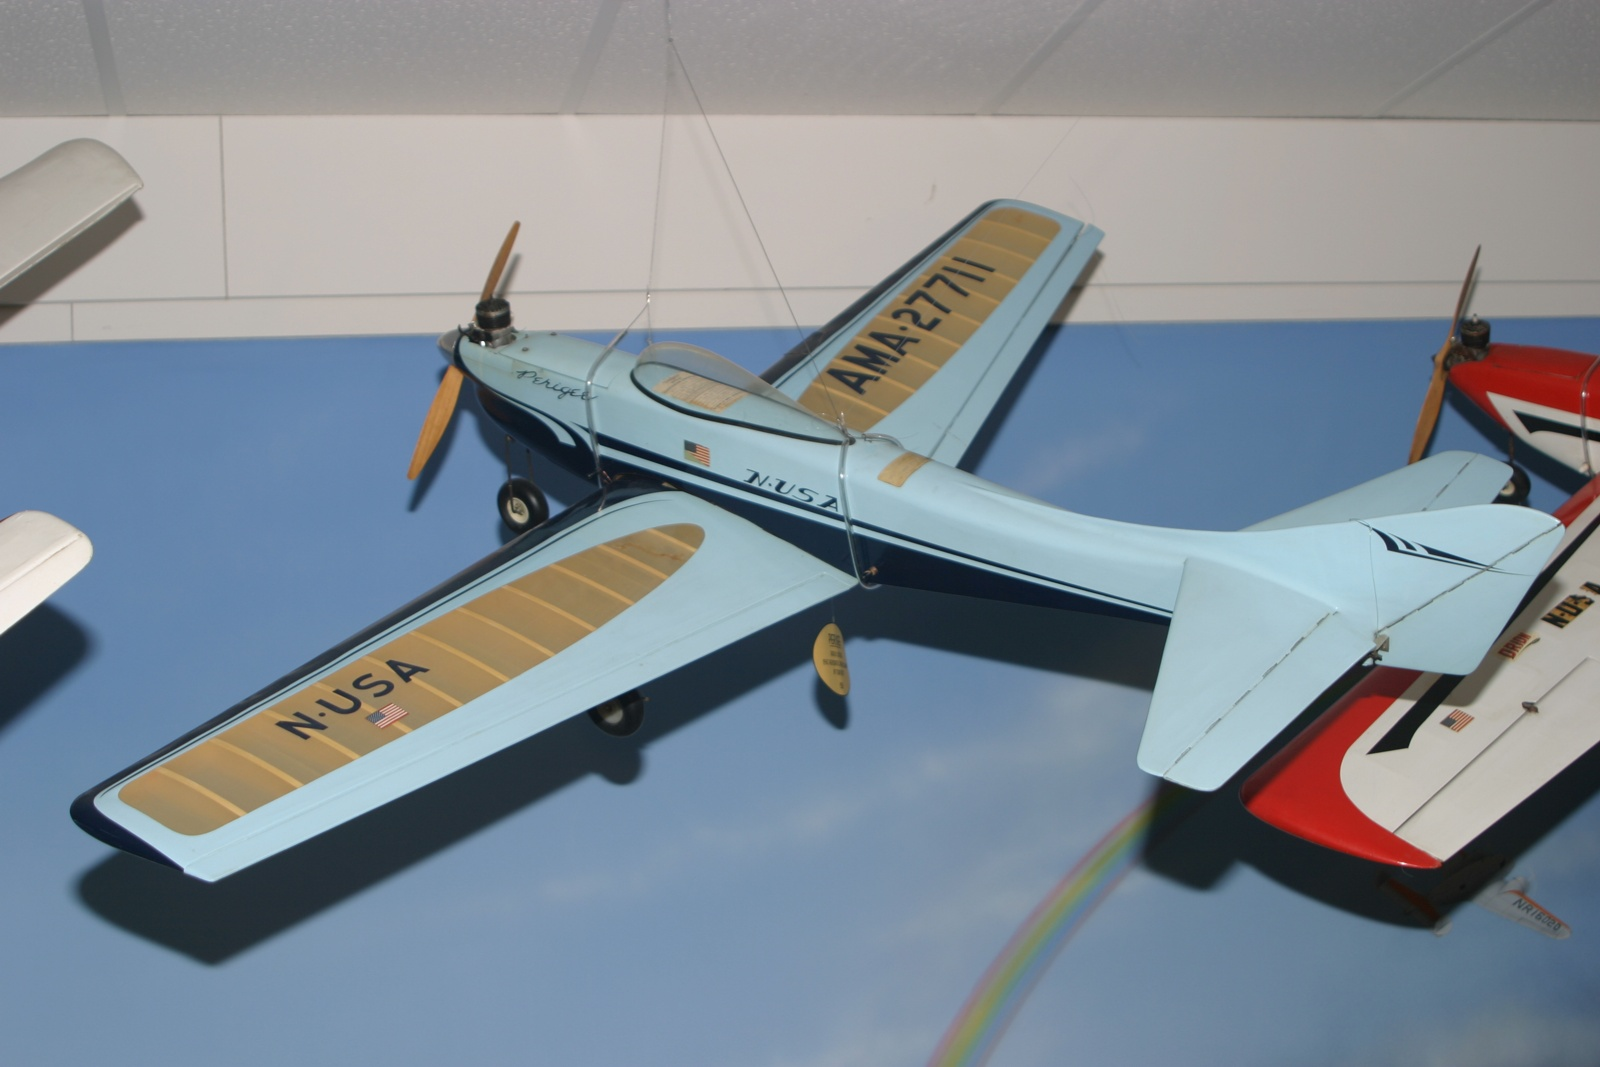 Original model on display in the AMA Museum